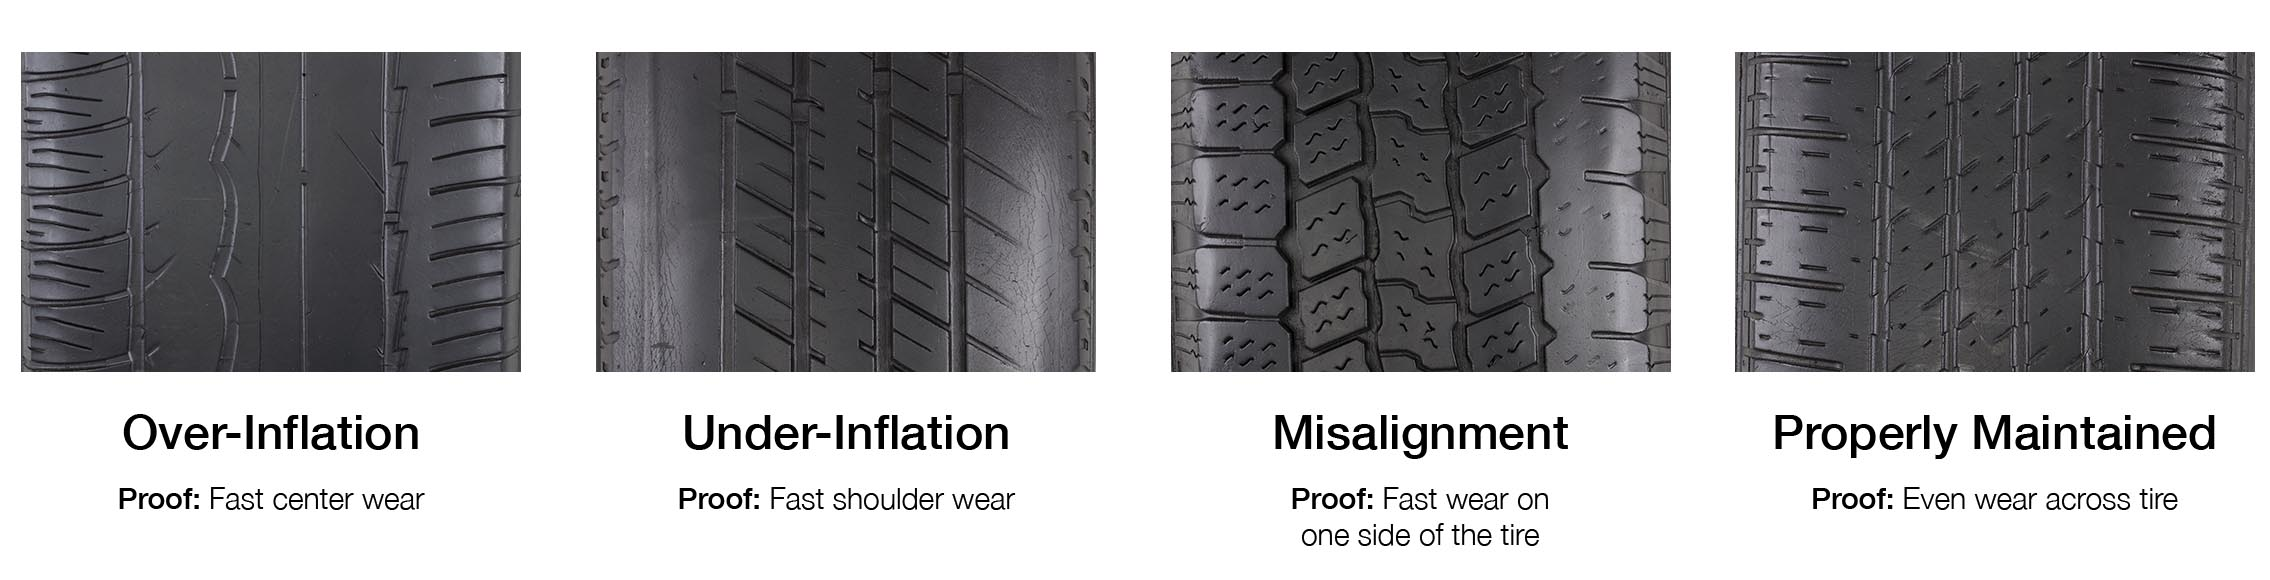 Four close shots of tire treadwear showing the results of over-inflation, under-inflation, misaligned, and properly maintained tires.